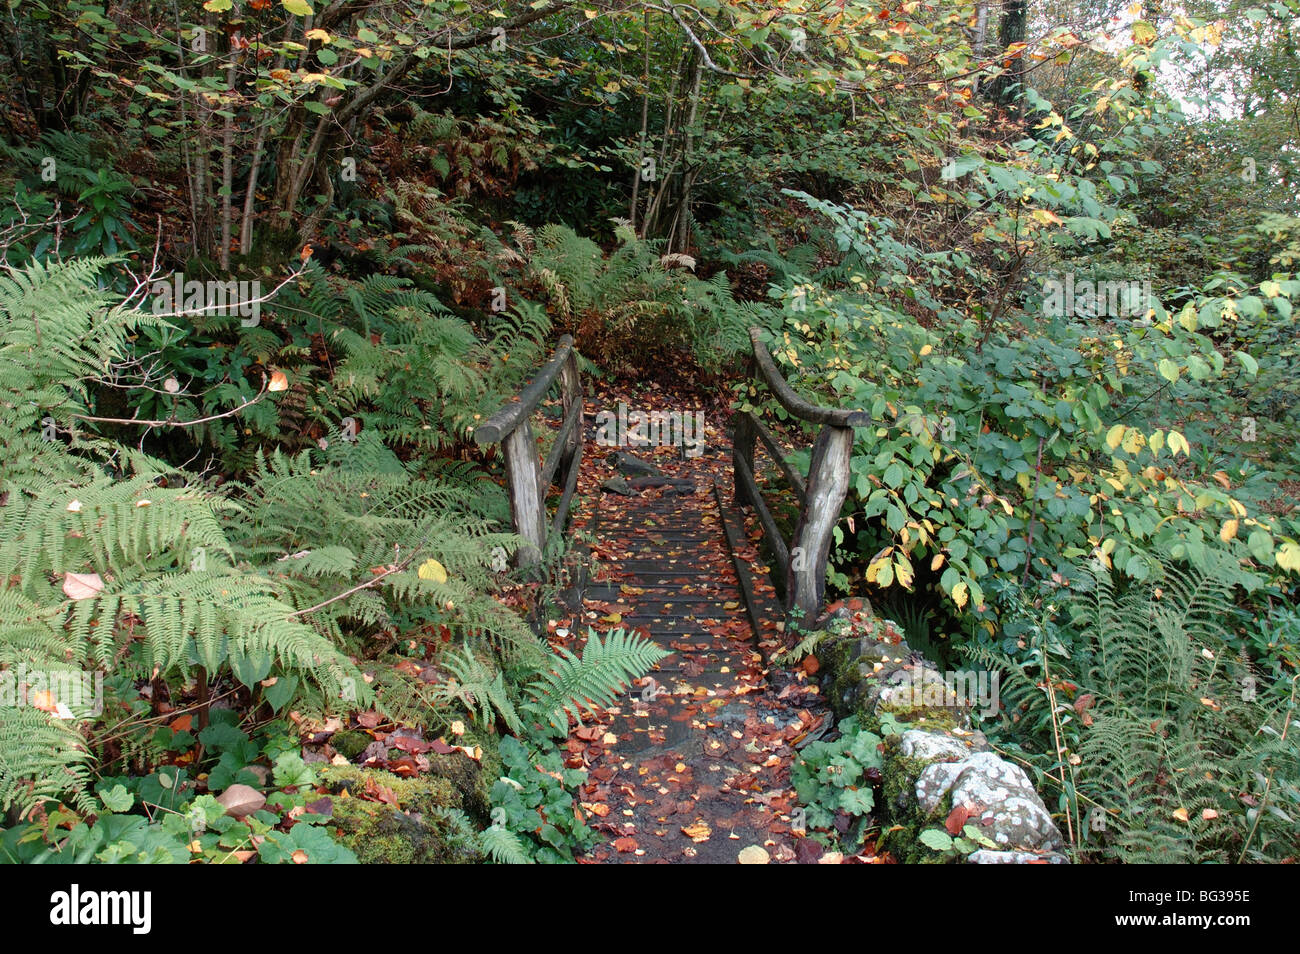 Old wooden bridge in woodland garden at Ruskin's house in the Lake District, U.K. - Stock Image